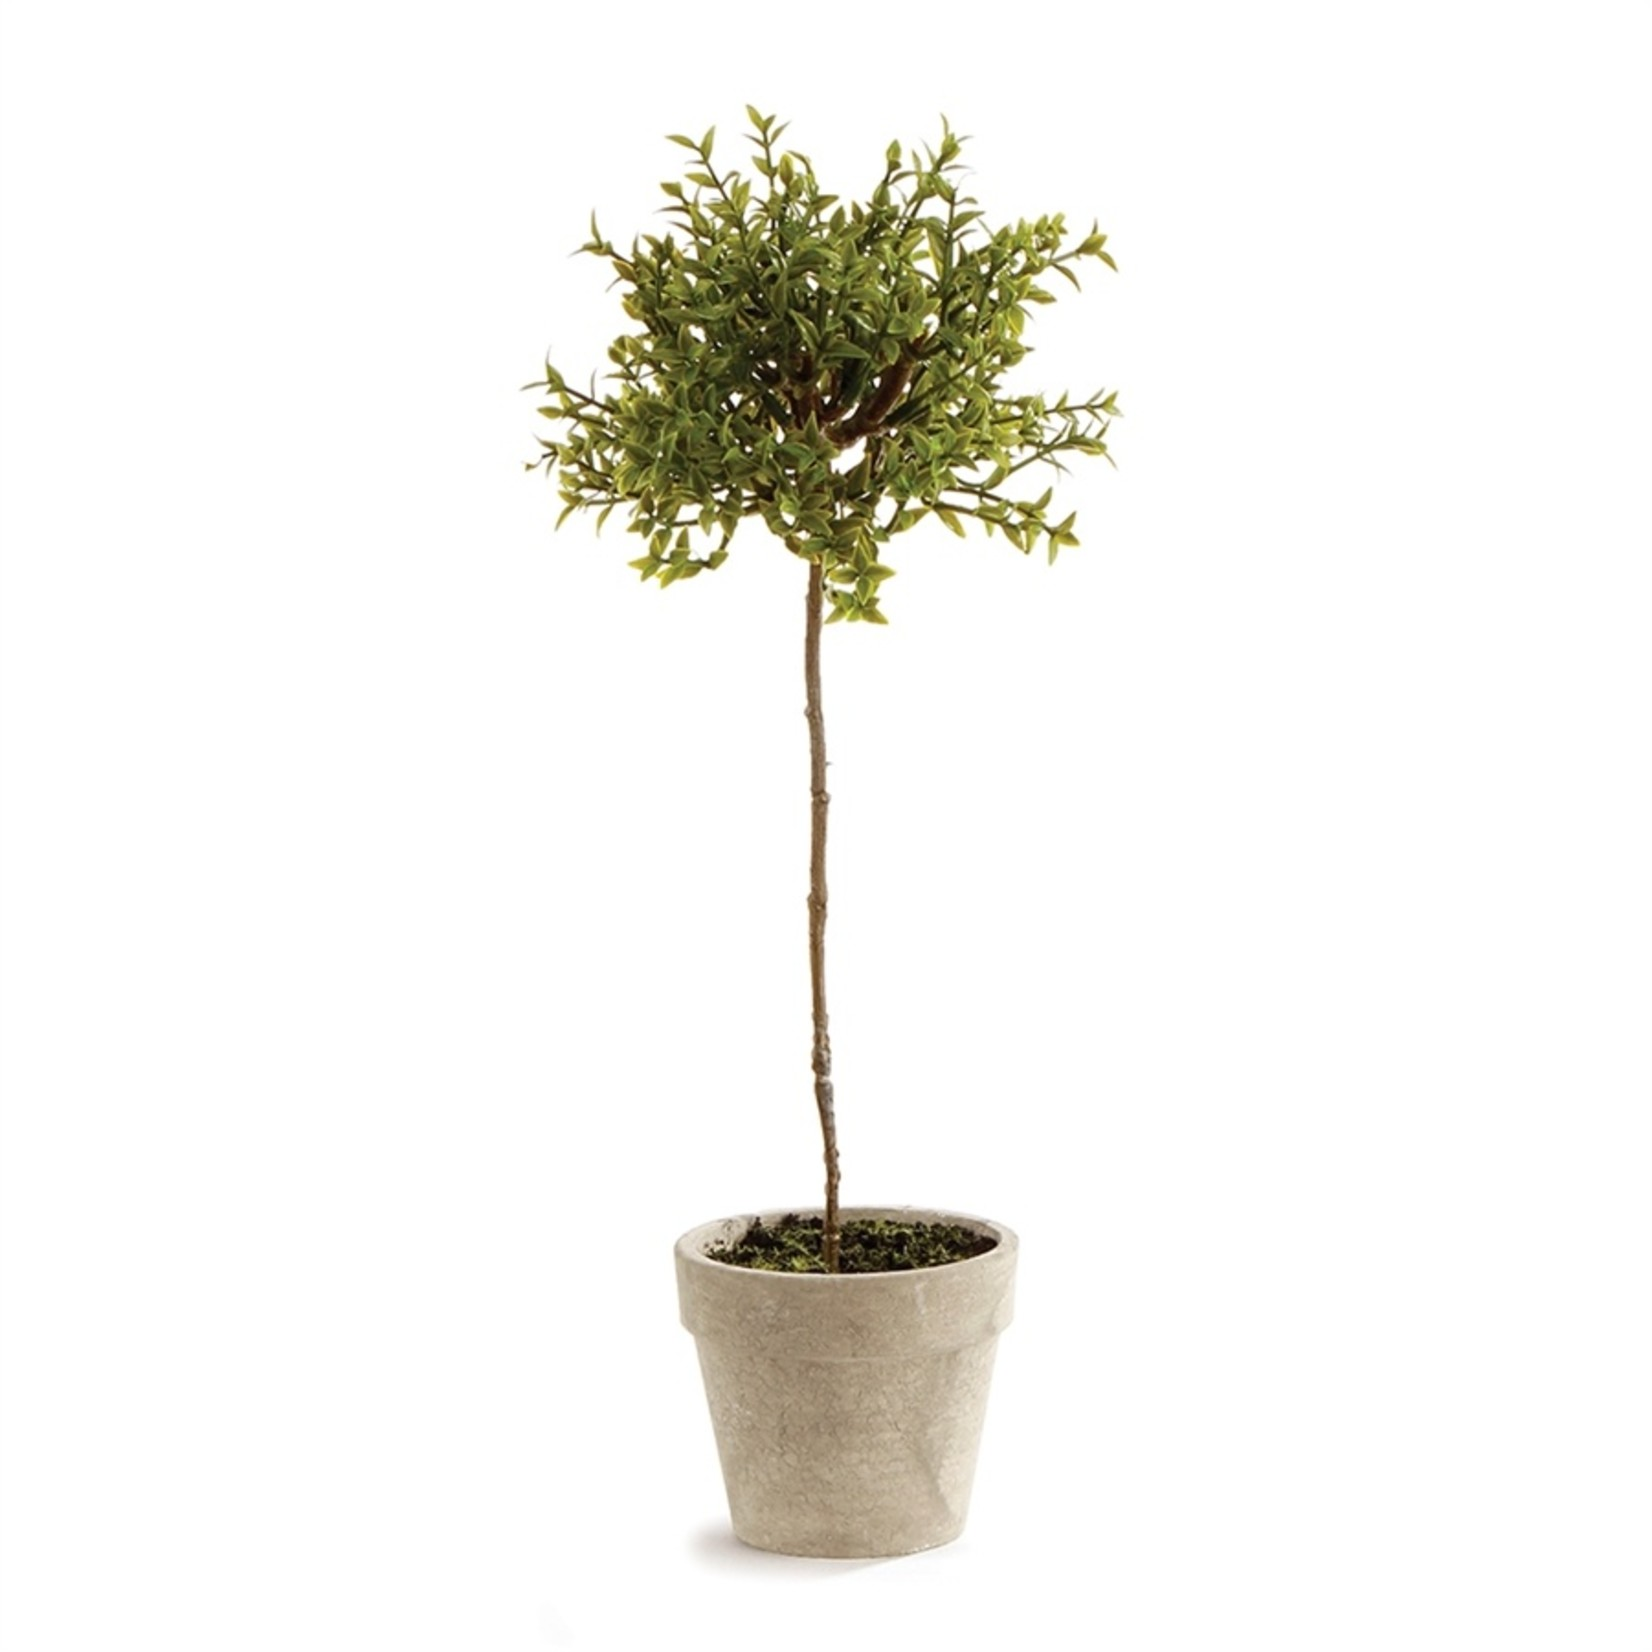 Napa Home and Garden Thyme Topiary